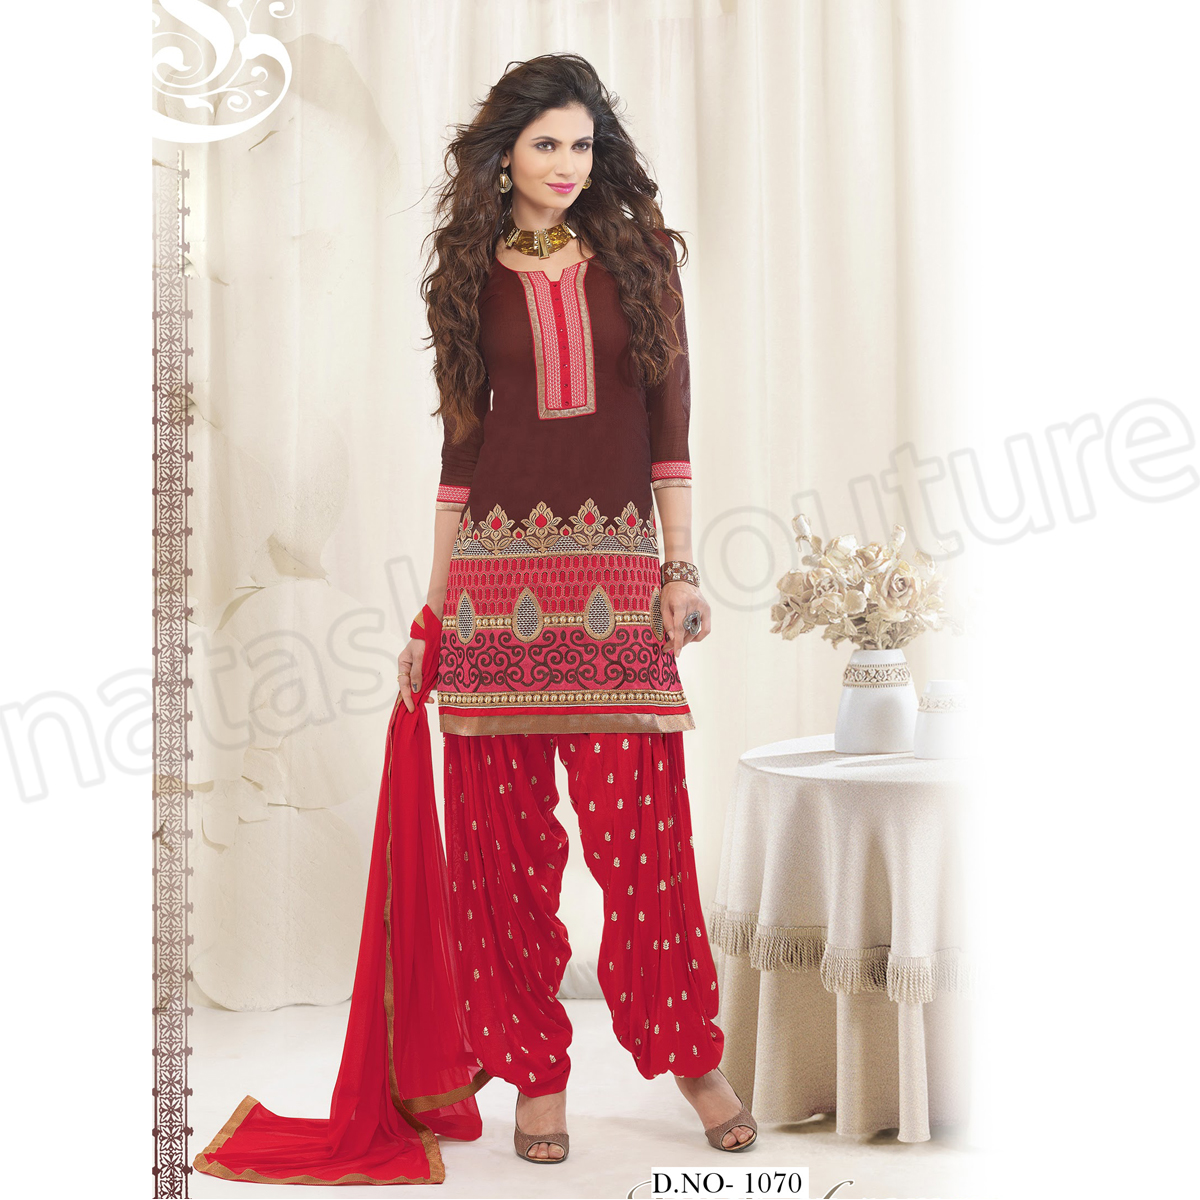 Latest Indian Patiala shalwar kameez fashion 2015-2016 (14)